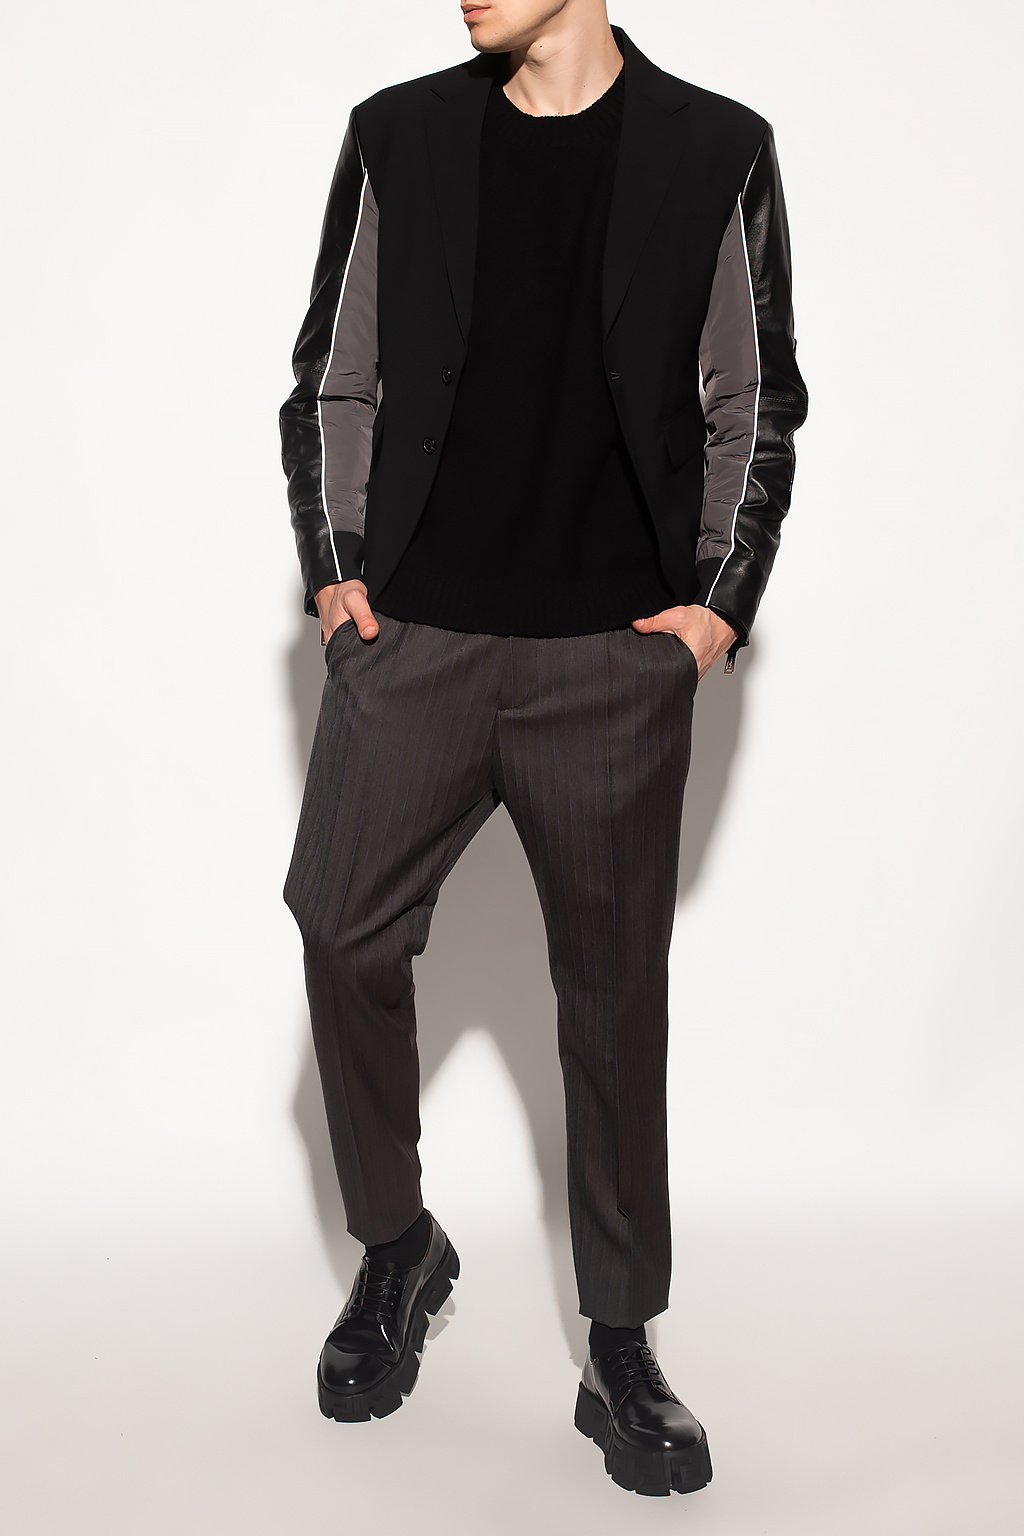 Dsquared2 'Los Angeles Fit' trousers